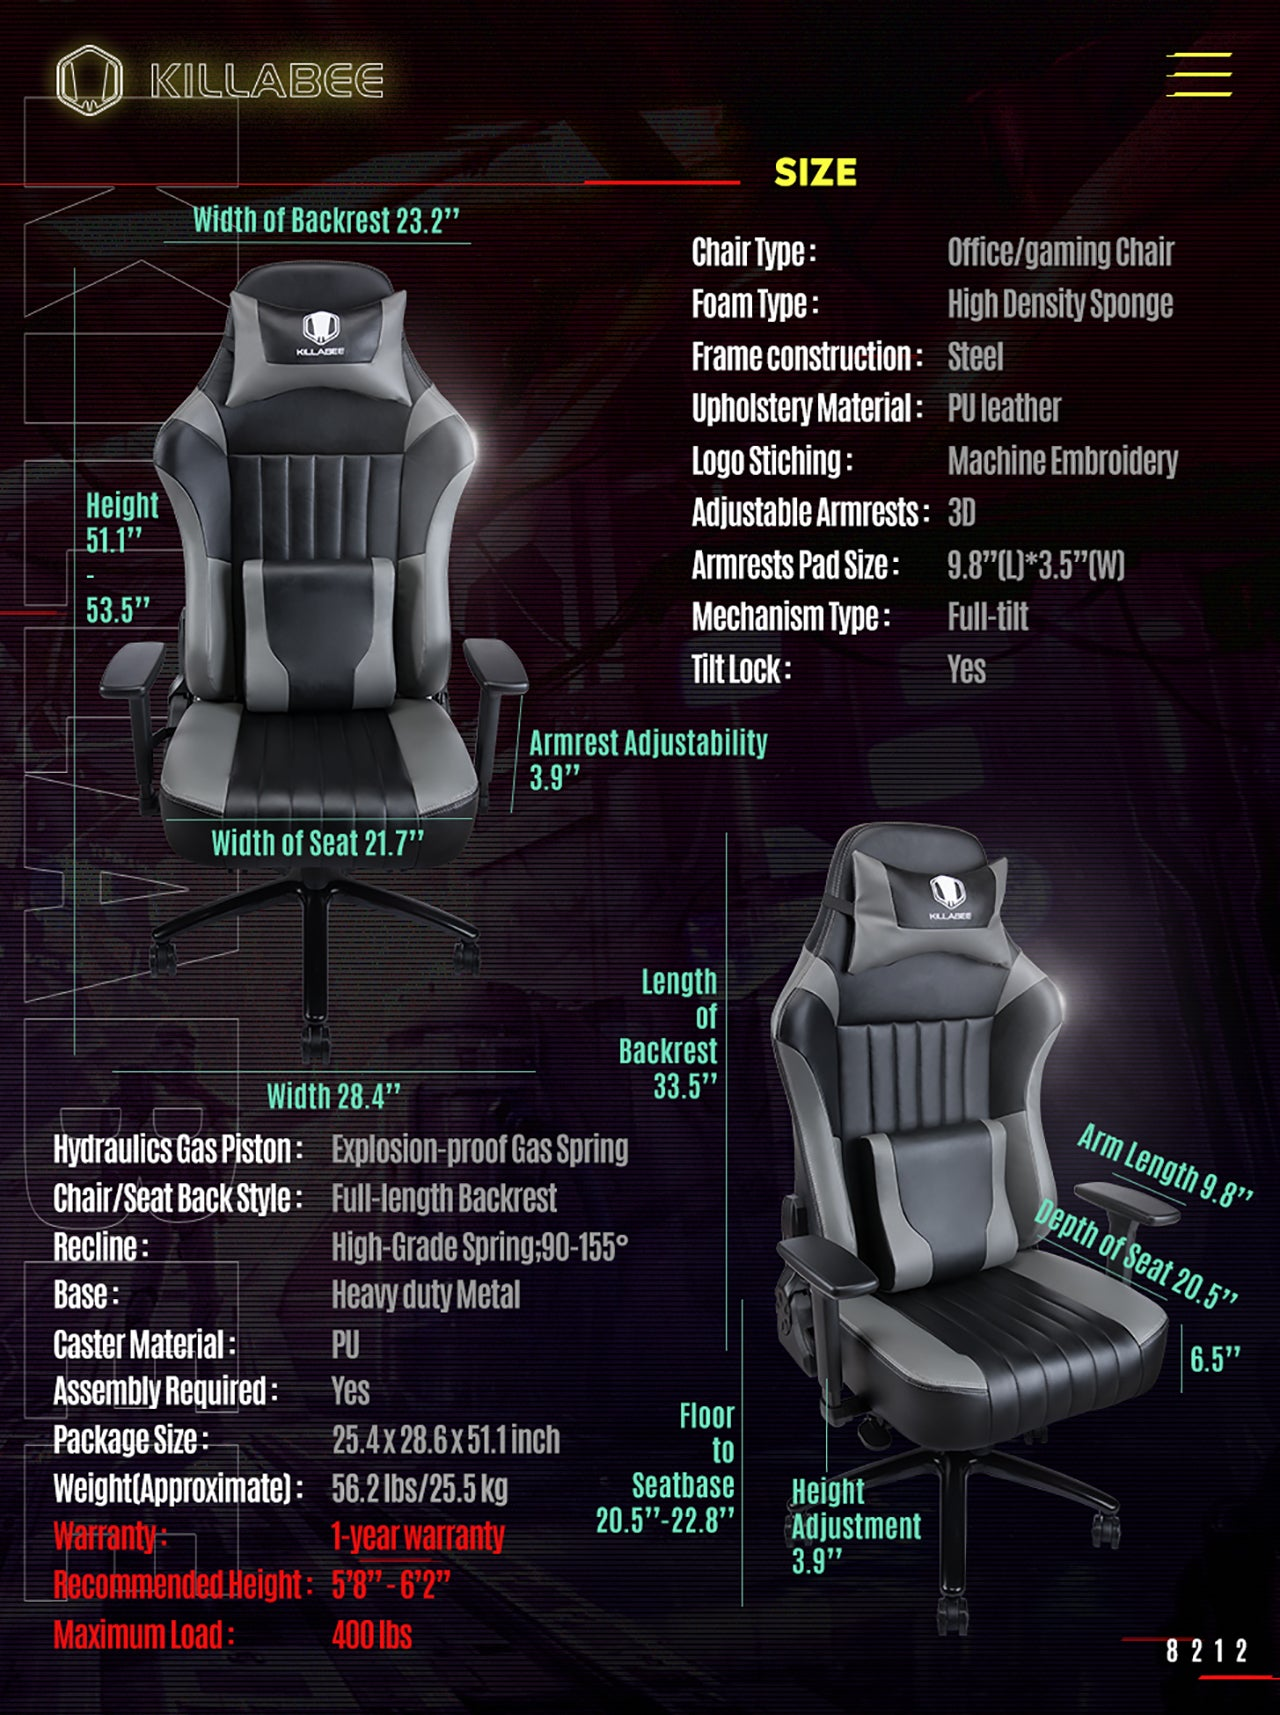 KILLABEE BIG AND TALL GAMING CHAIR 8212 GRAY SPECIFICATION